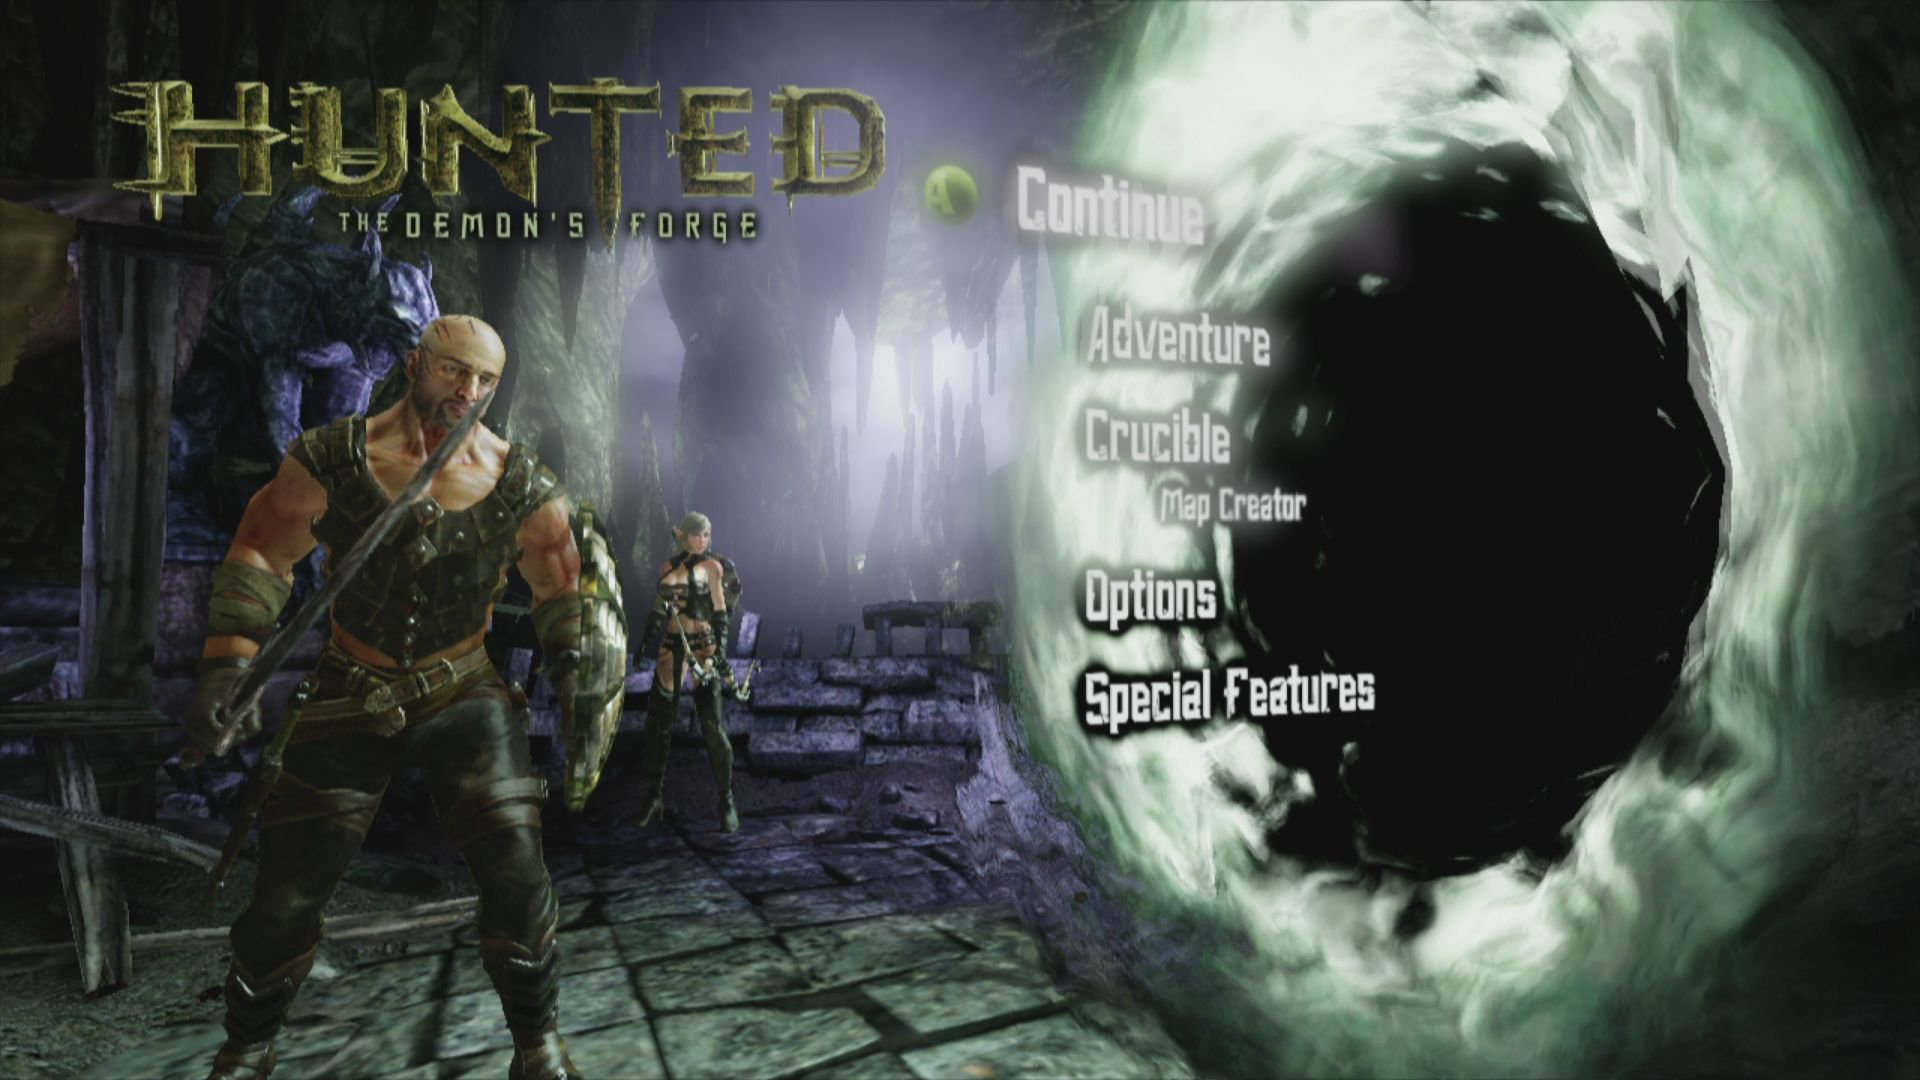 Hunted: The Demon's Forge Xbox 360 Selection Screen